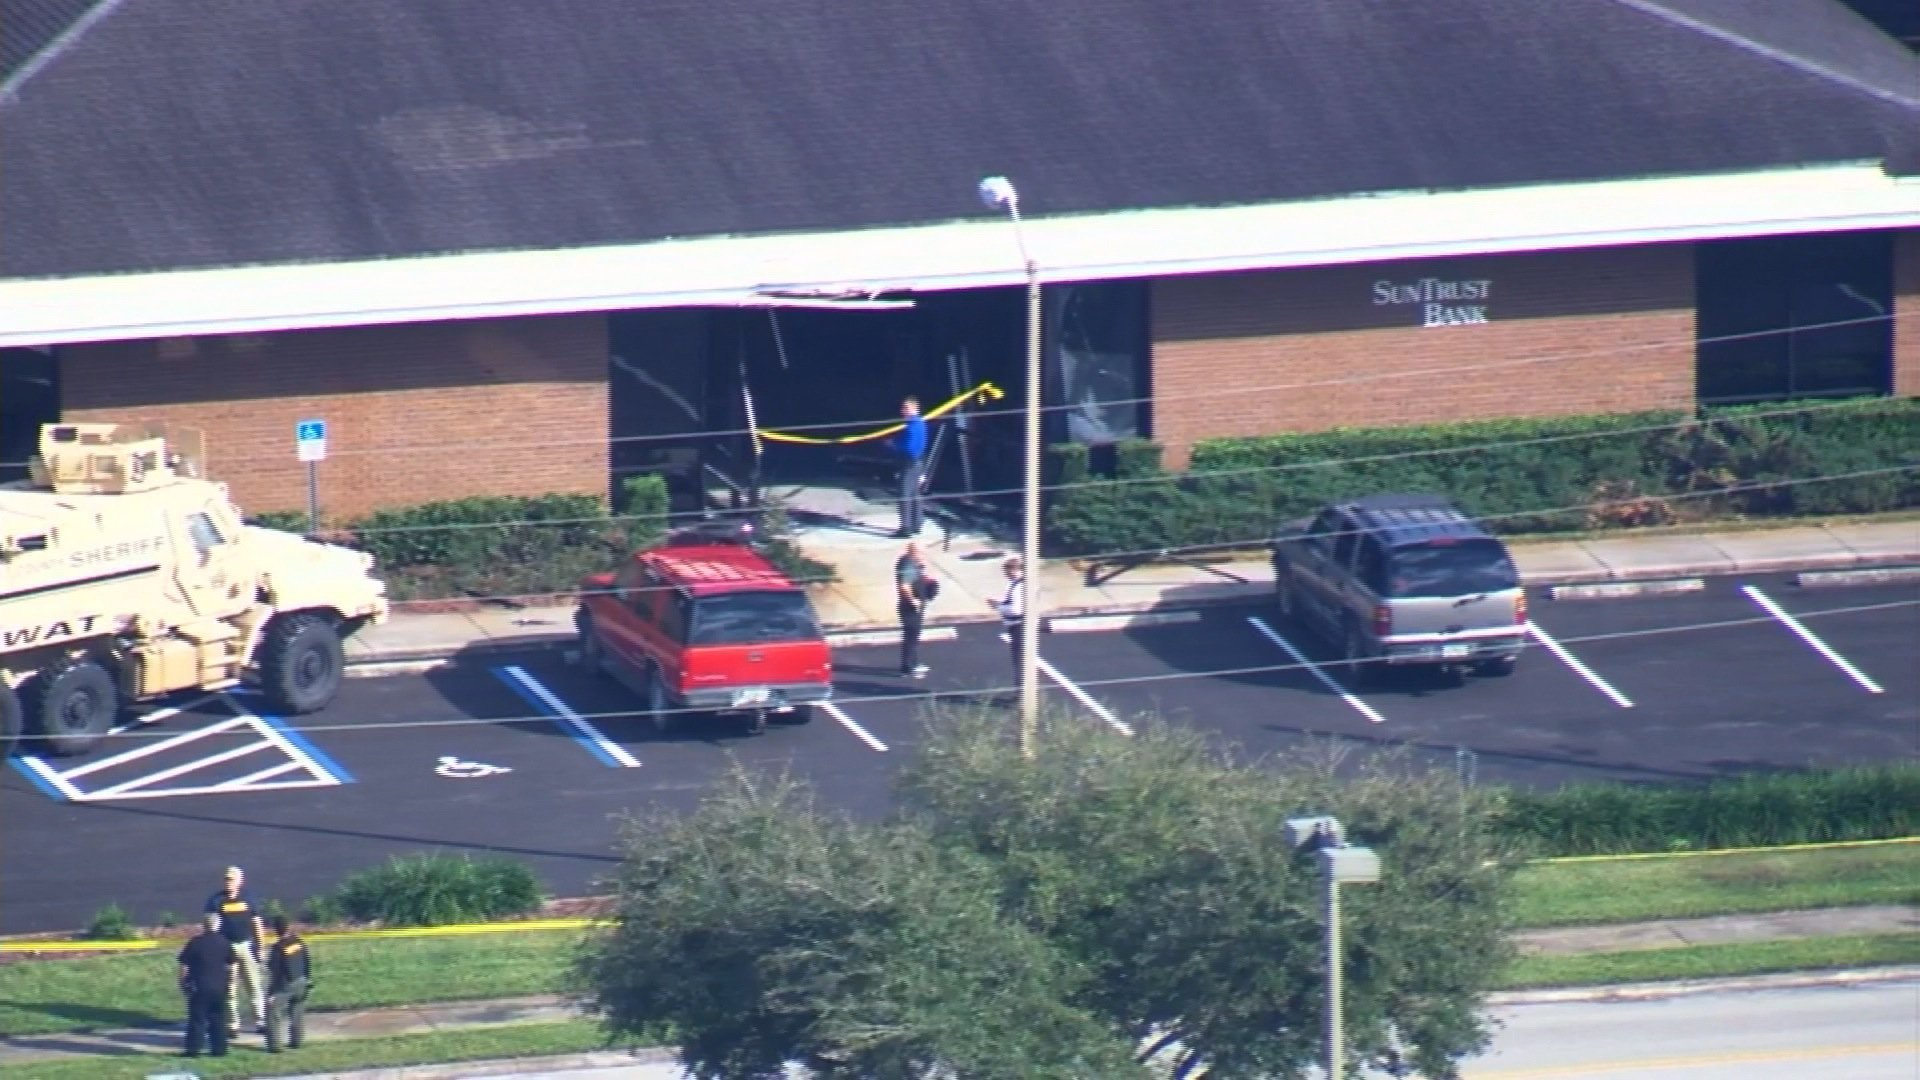 """**Embargo: Tampa, Fla.**  Highlands County Commissioner Don Elwell said that multiple people have been shot in a """"hostage situation"""" at a SunTrust Bank in Sebring, Florida."""